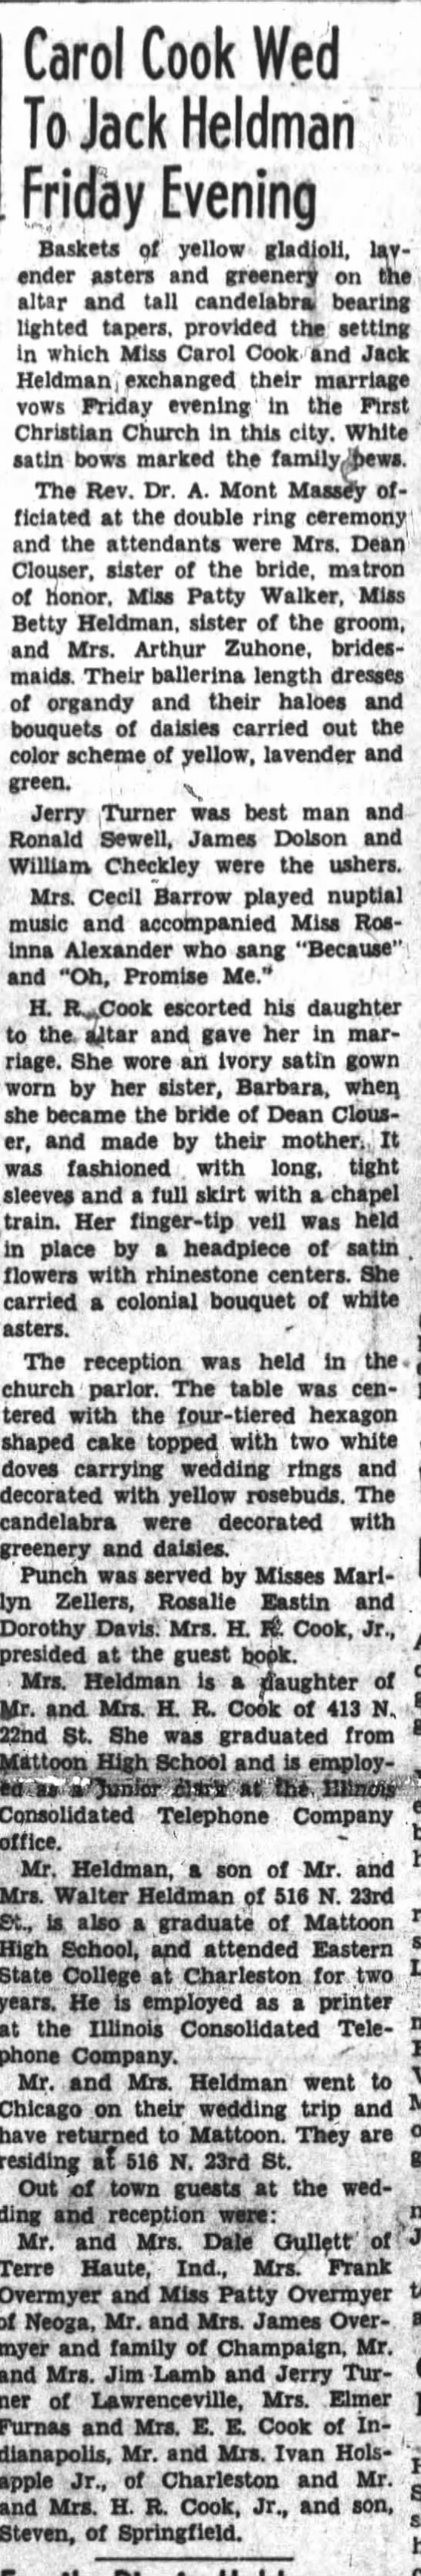 Mattoon Journal Gazette  6-30-1954 - Carol Cook Wed To Jack Heldmari Friday Evening...